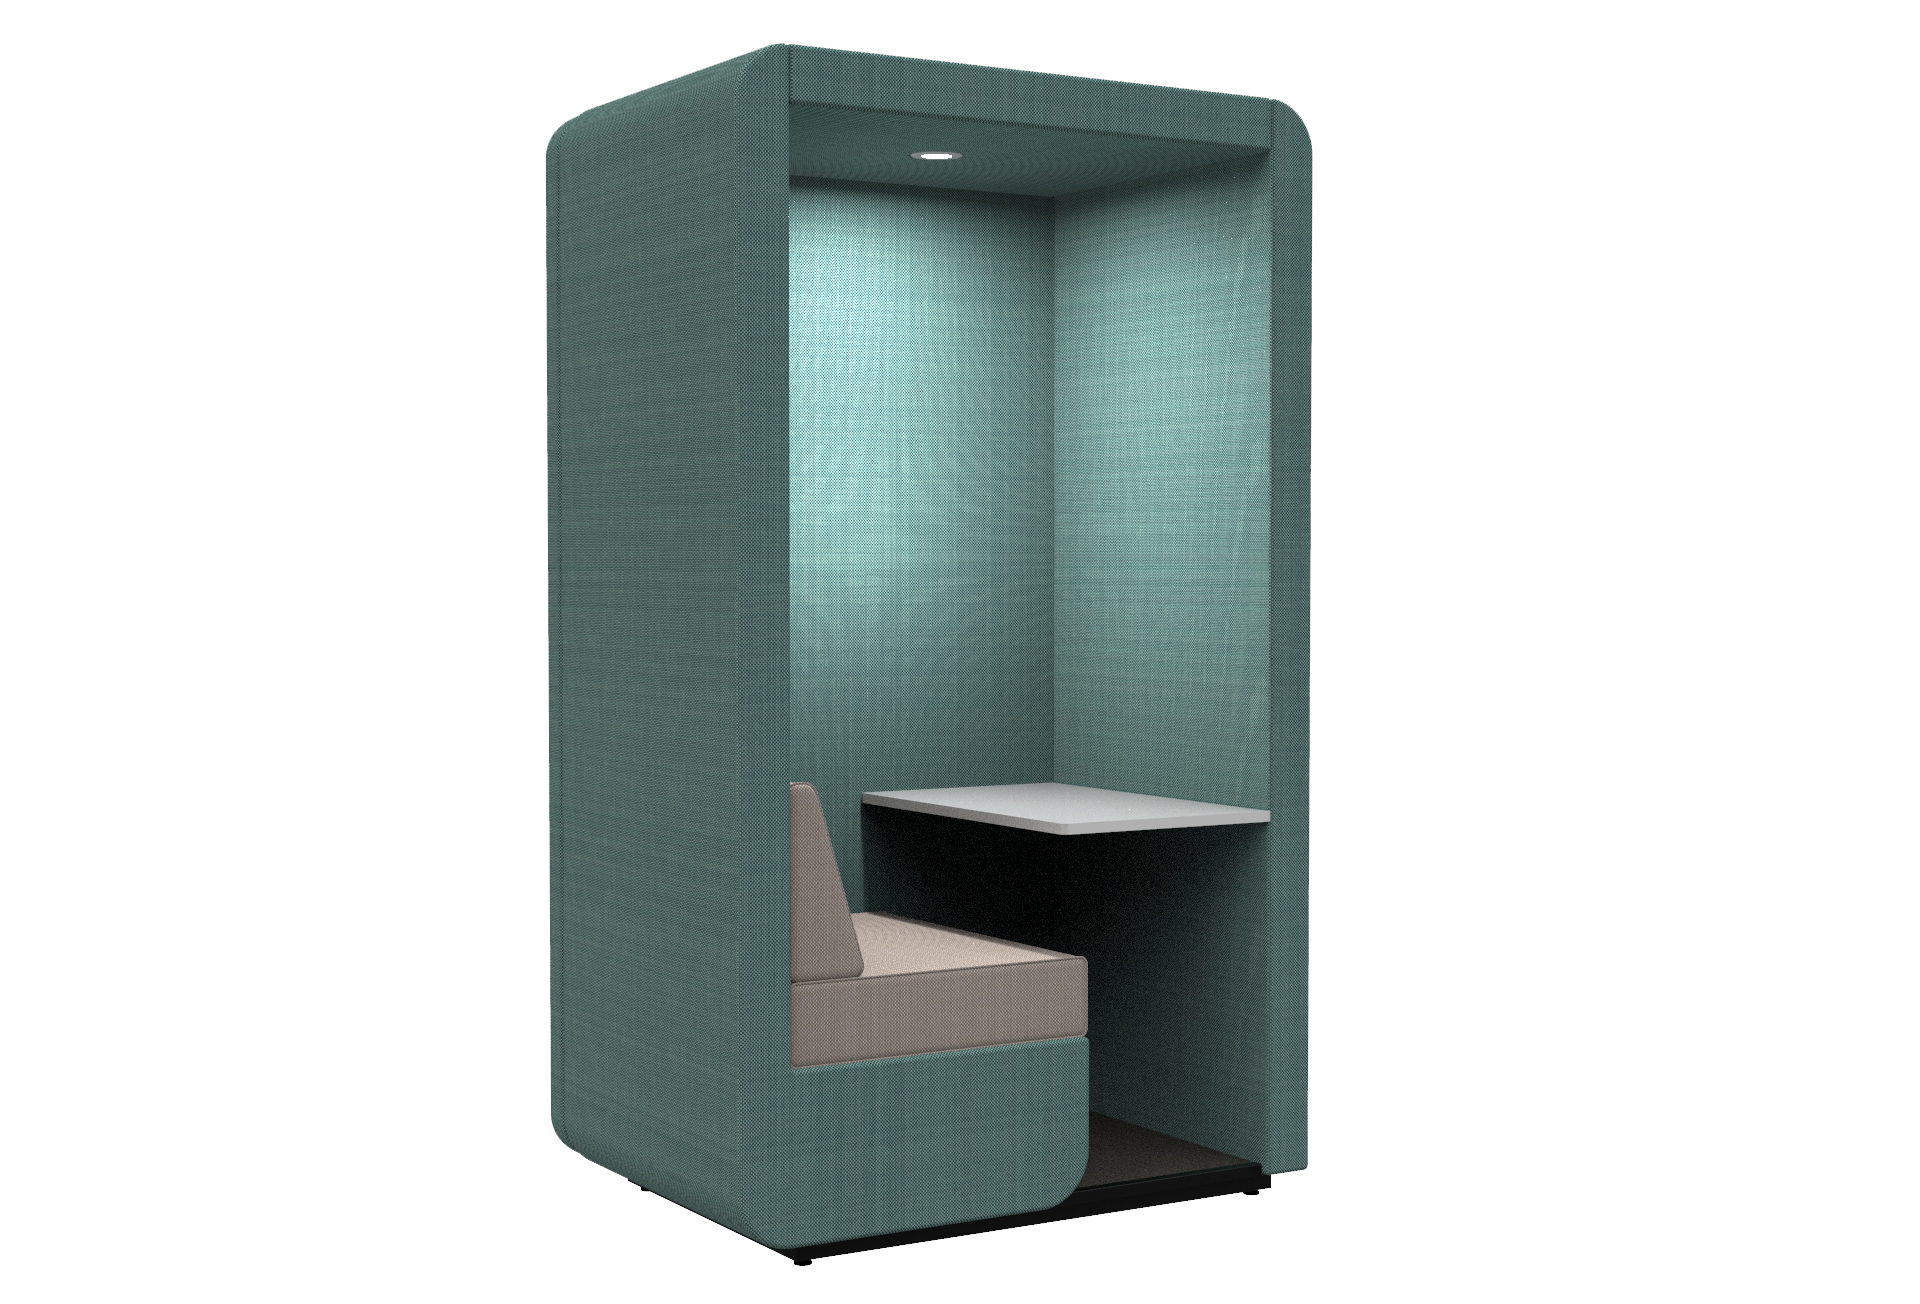 Workbooth with floor and end wall